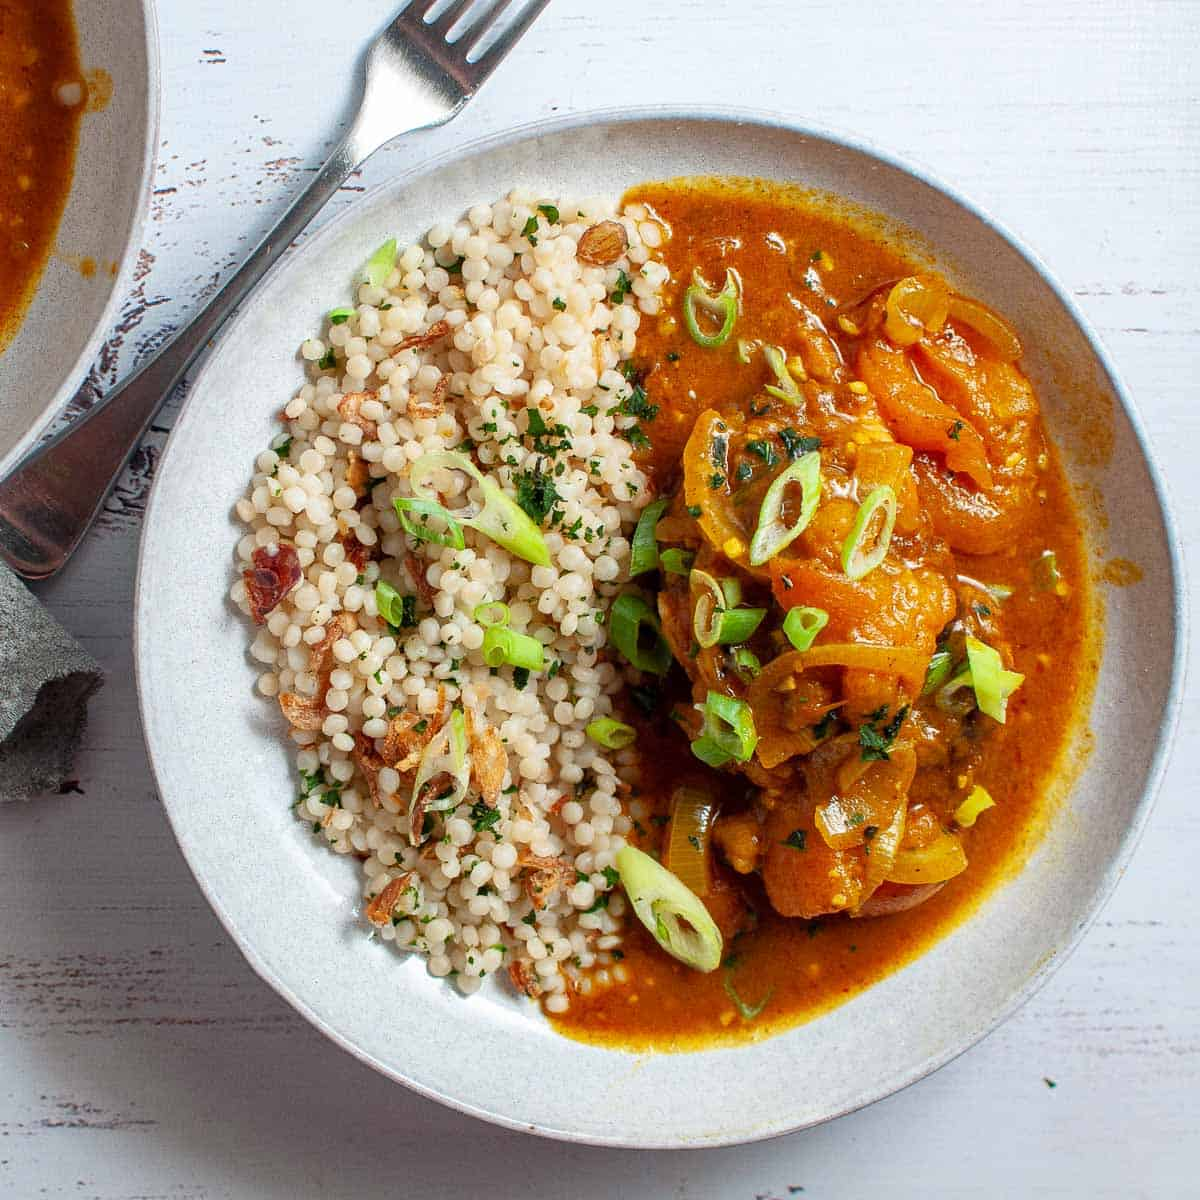 Apricot chicken curry with rice in a bowl